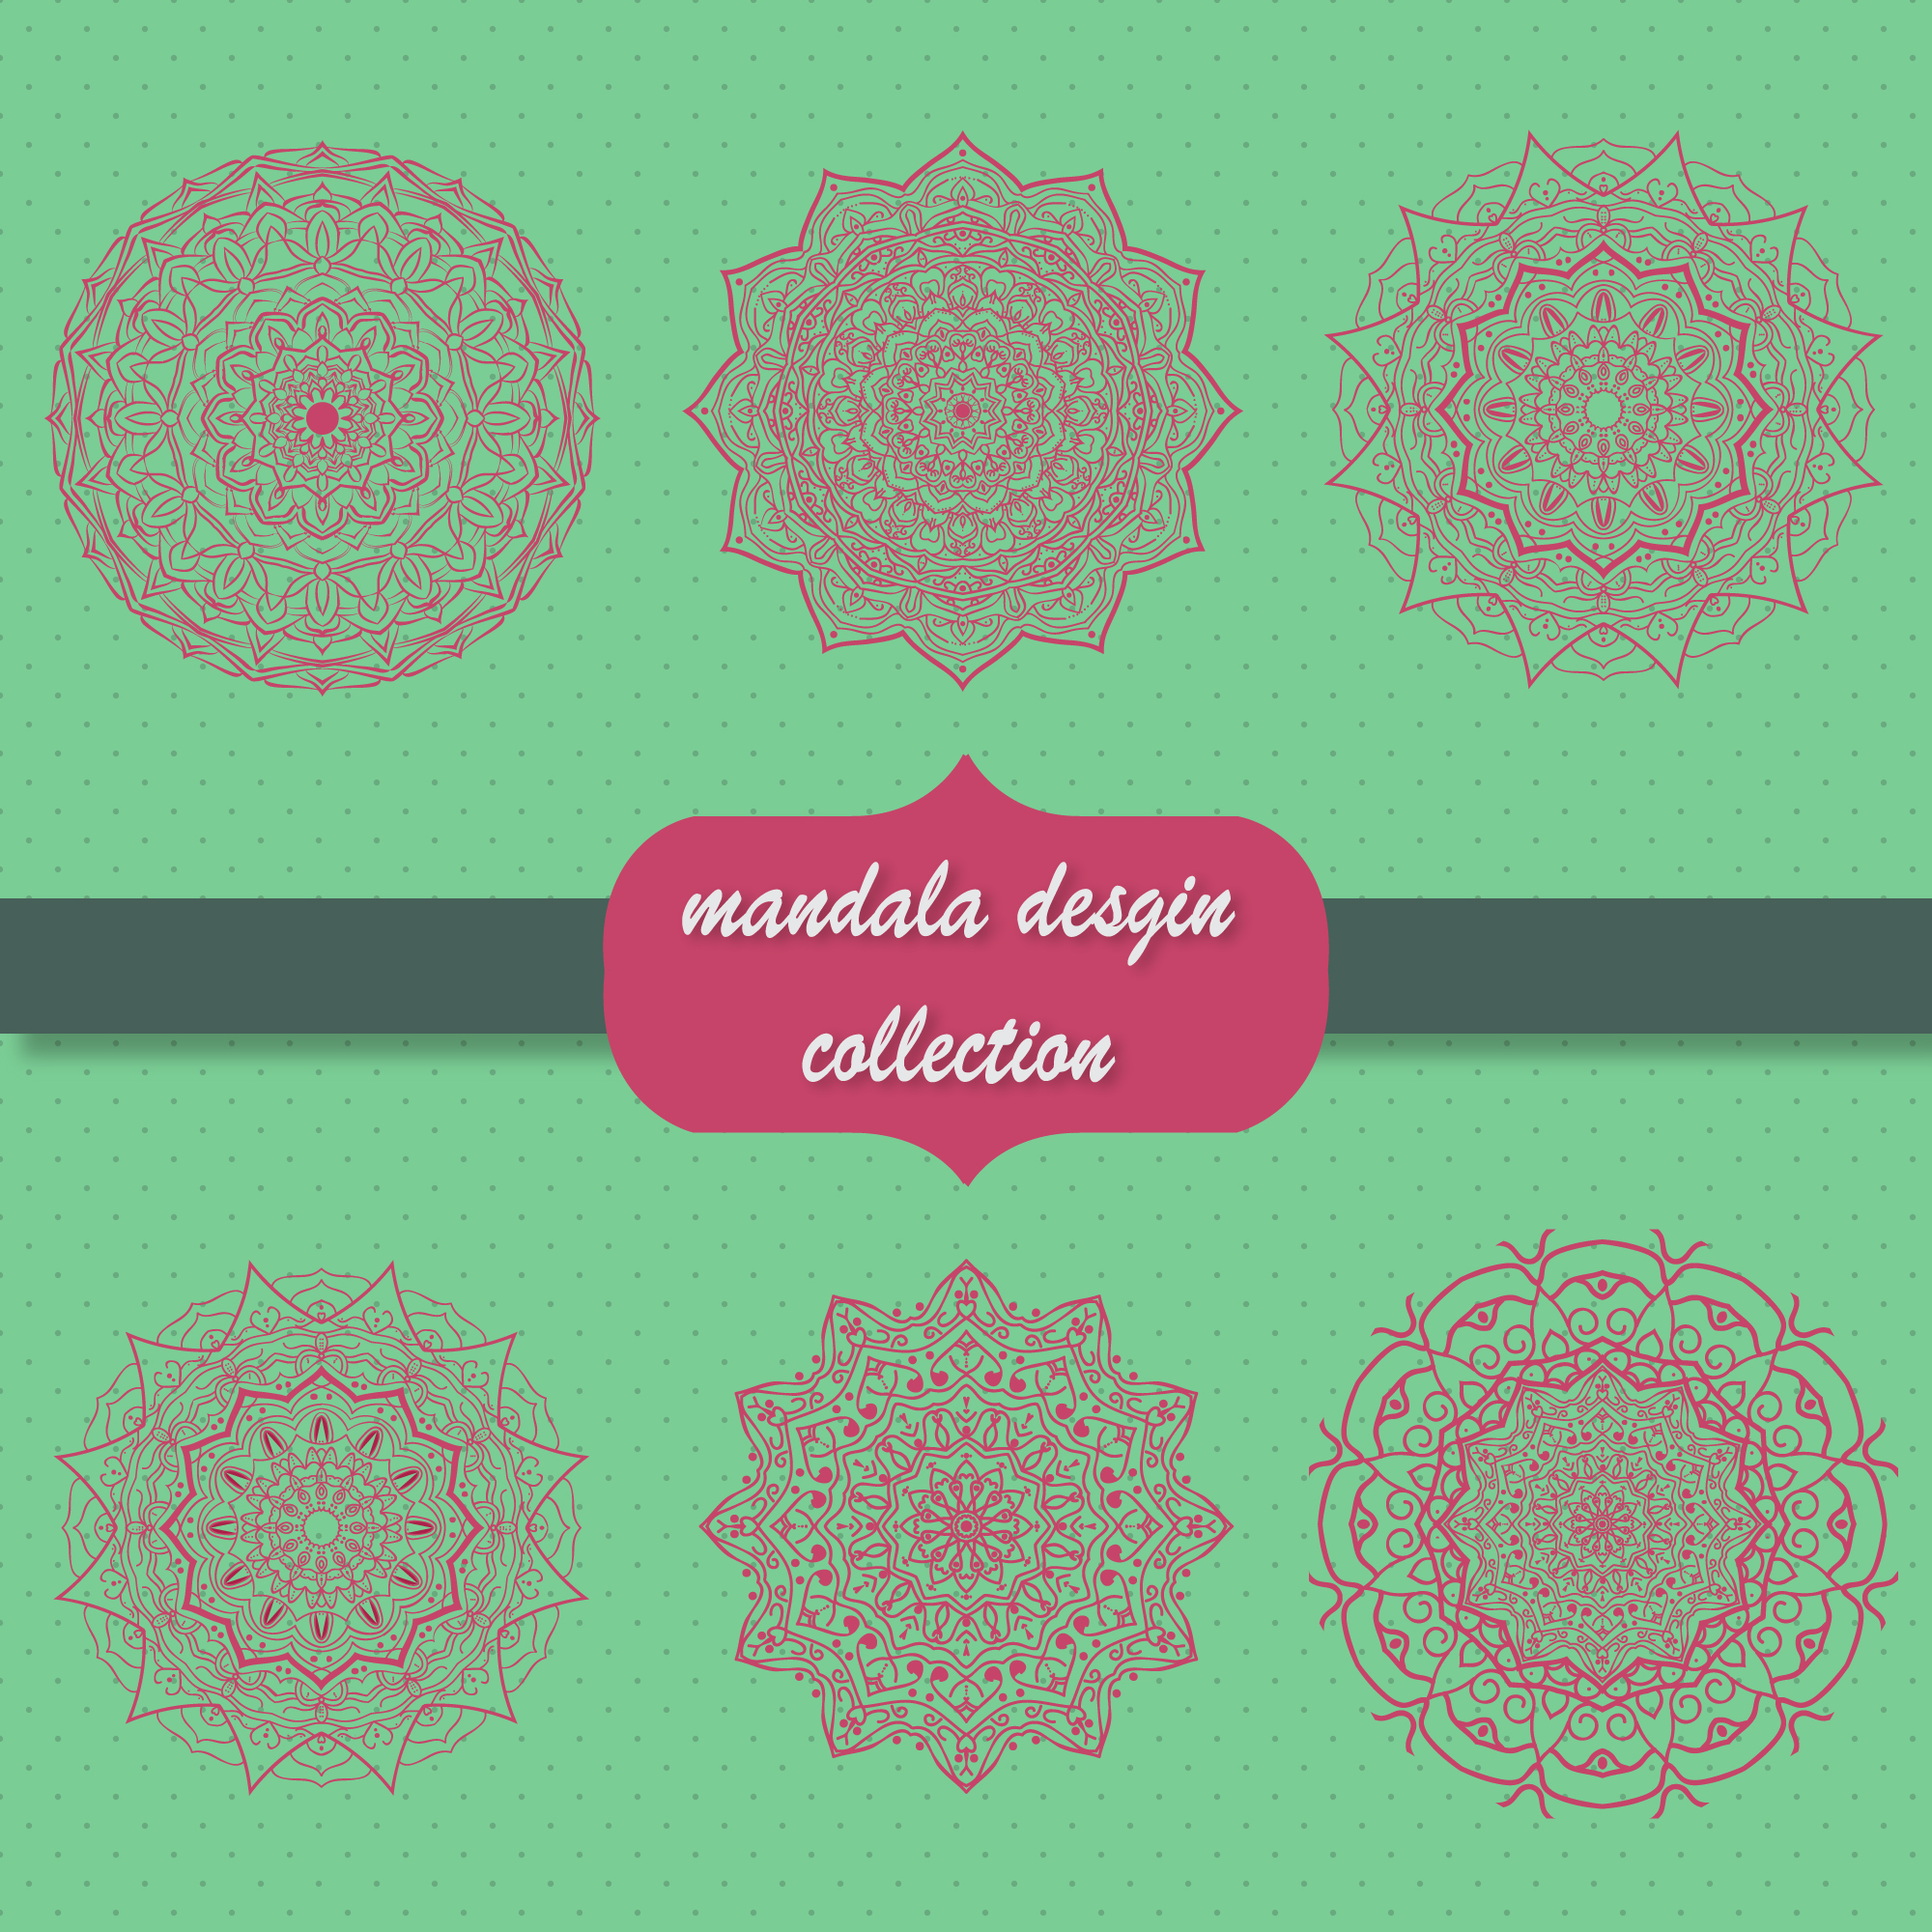 Mandala collection design